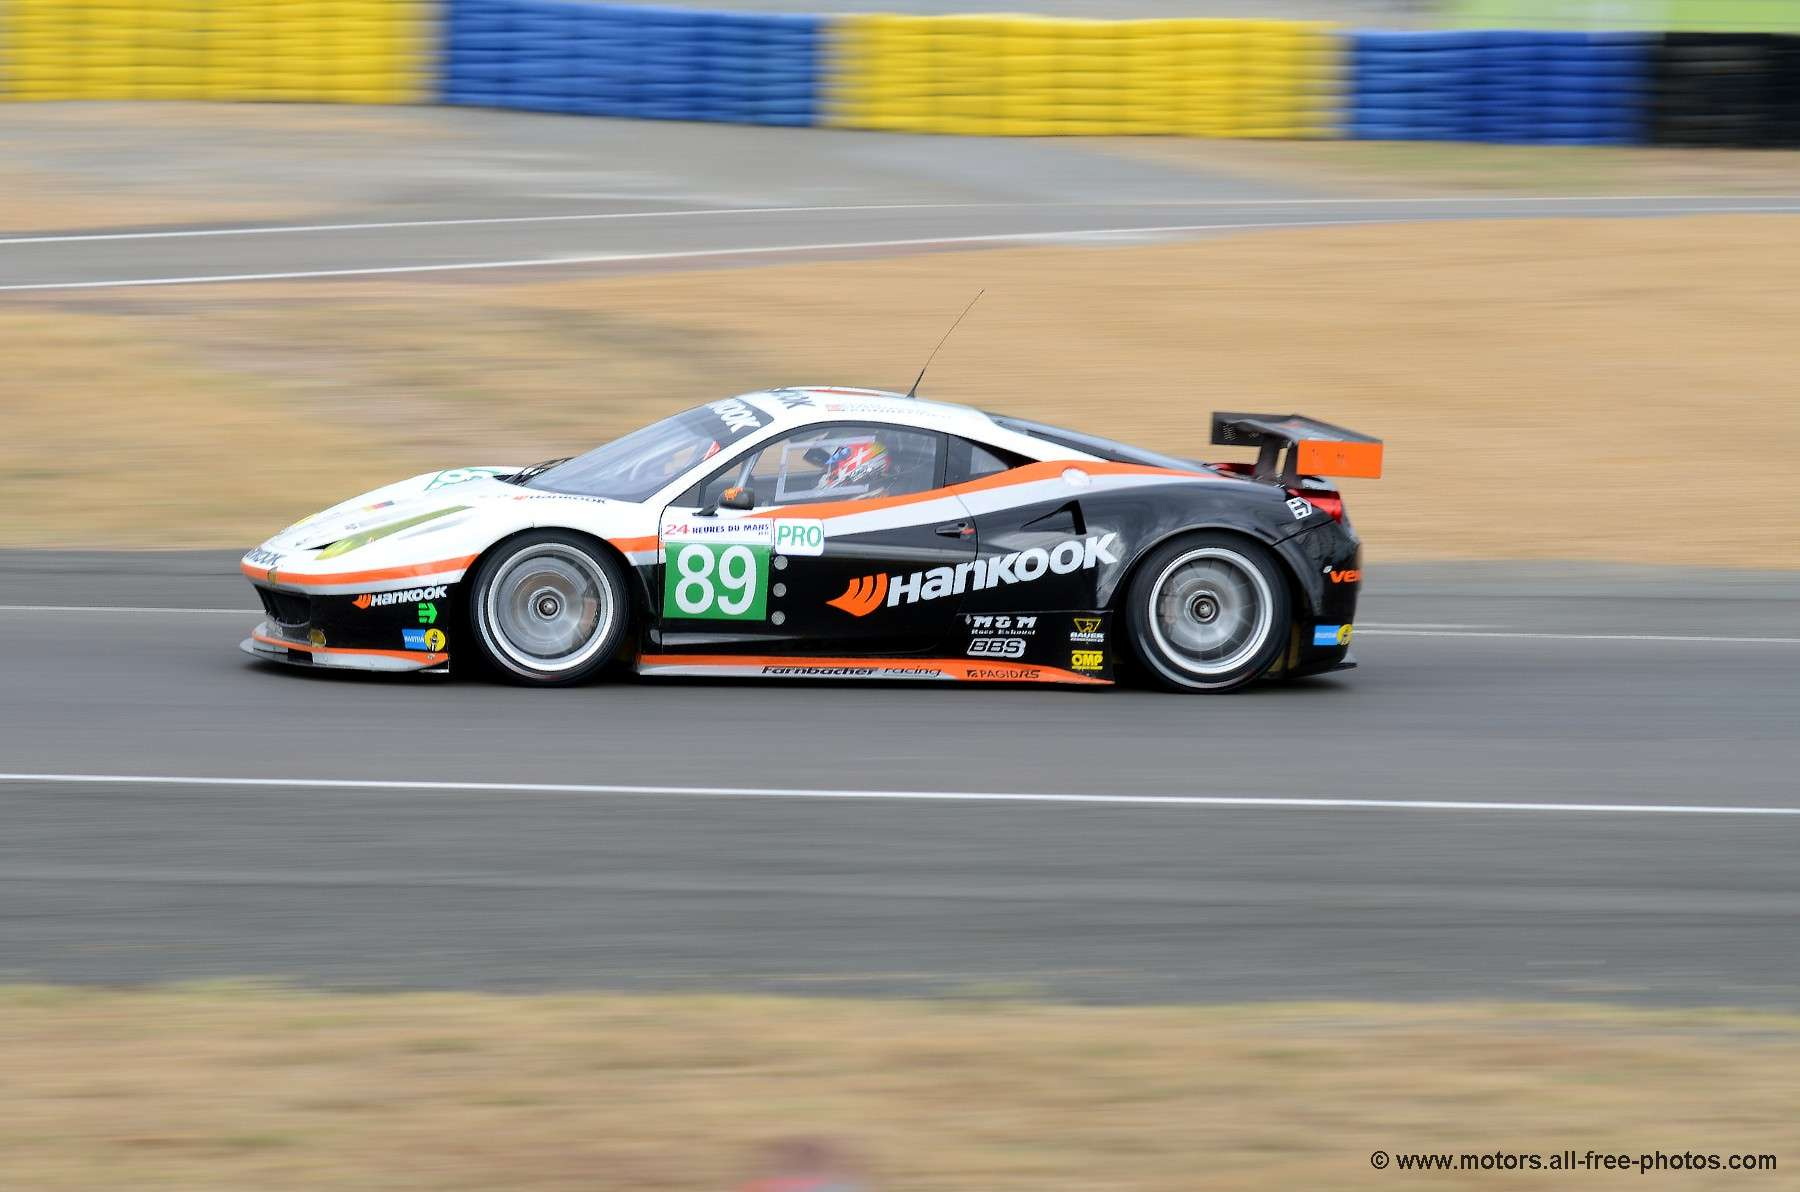 Ferrari 458 Italia - Team Hankook-Farnbacher